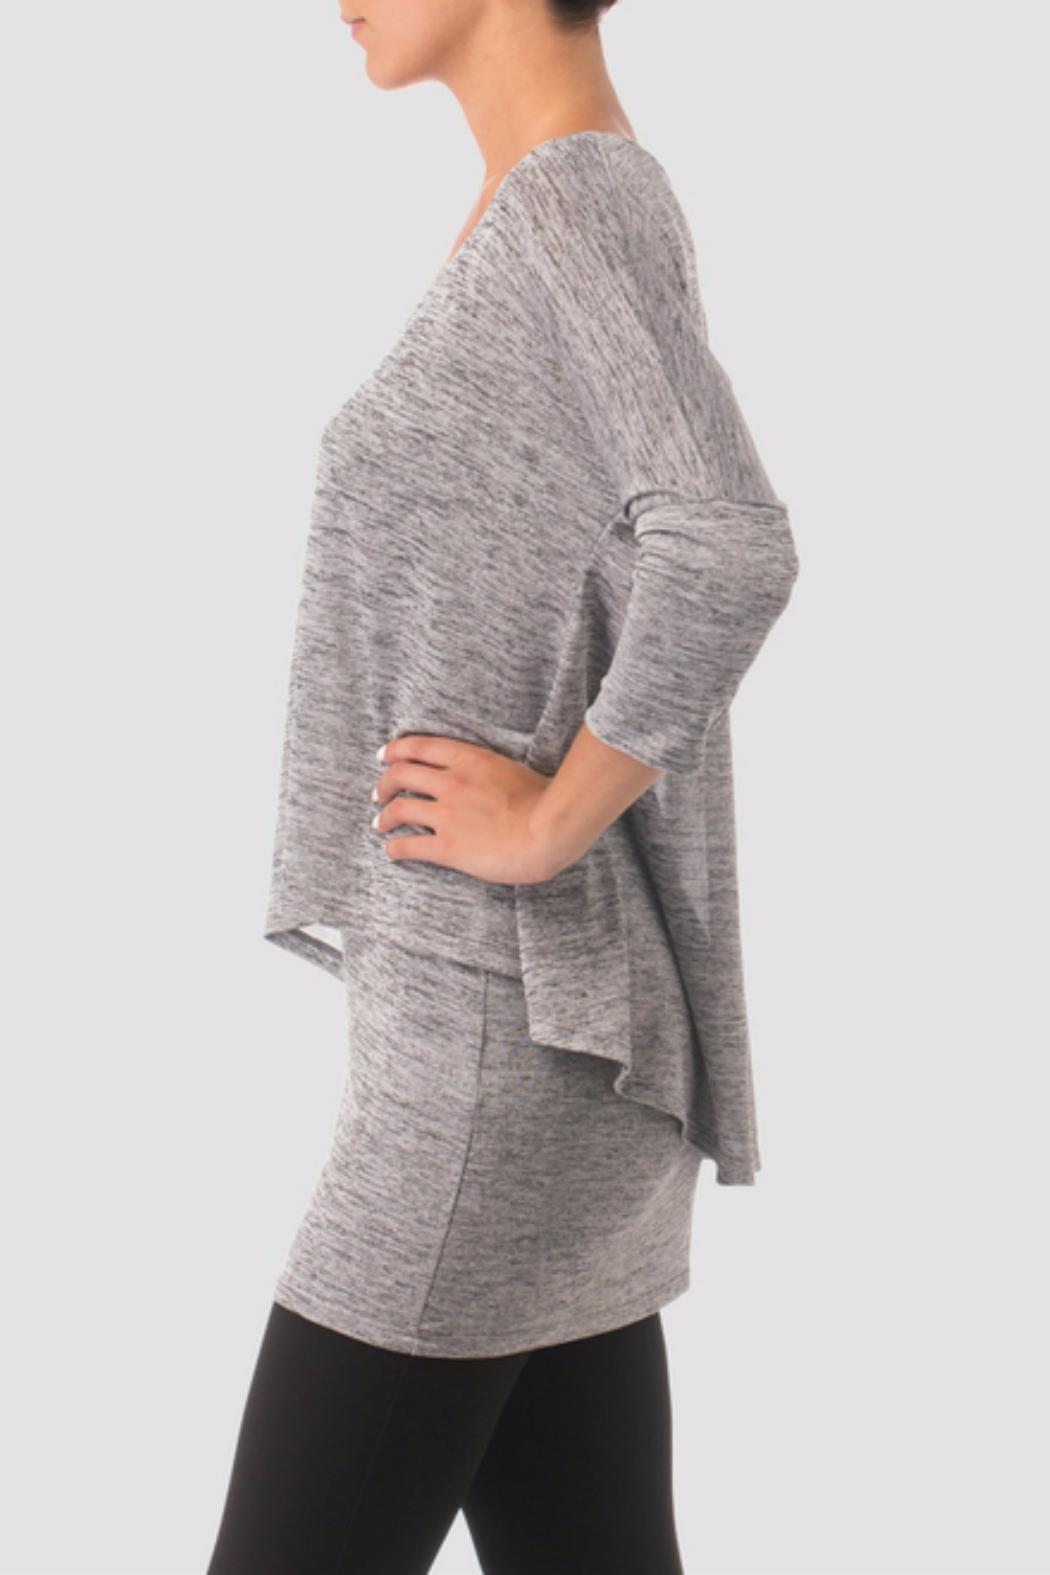 Joseph Ribkoff Grey Tunic Style Sweater from New York by June's ...